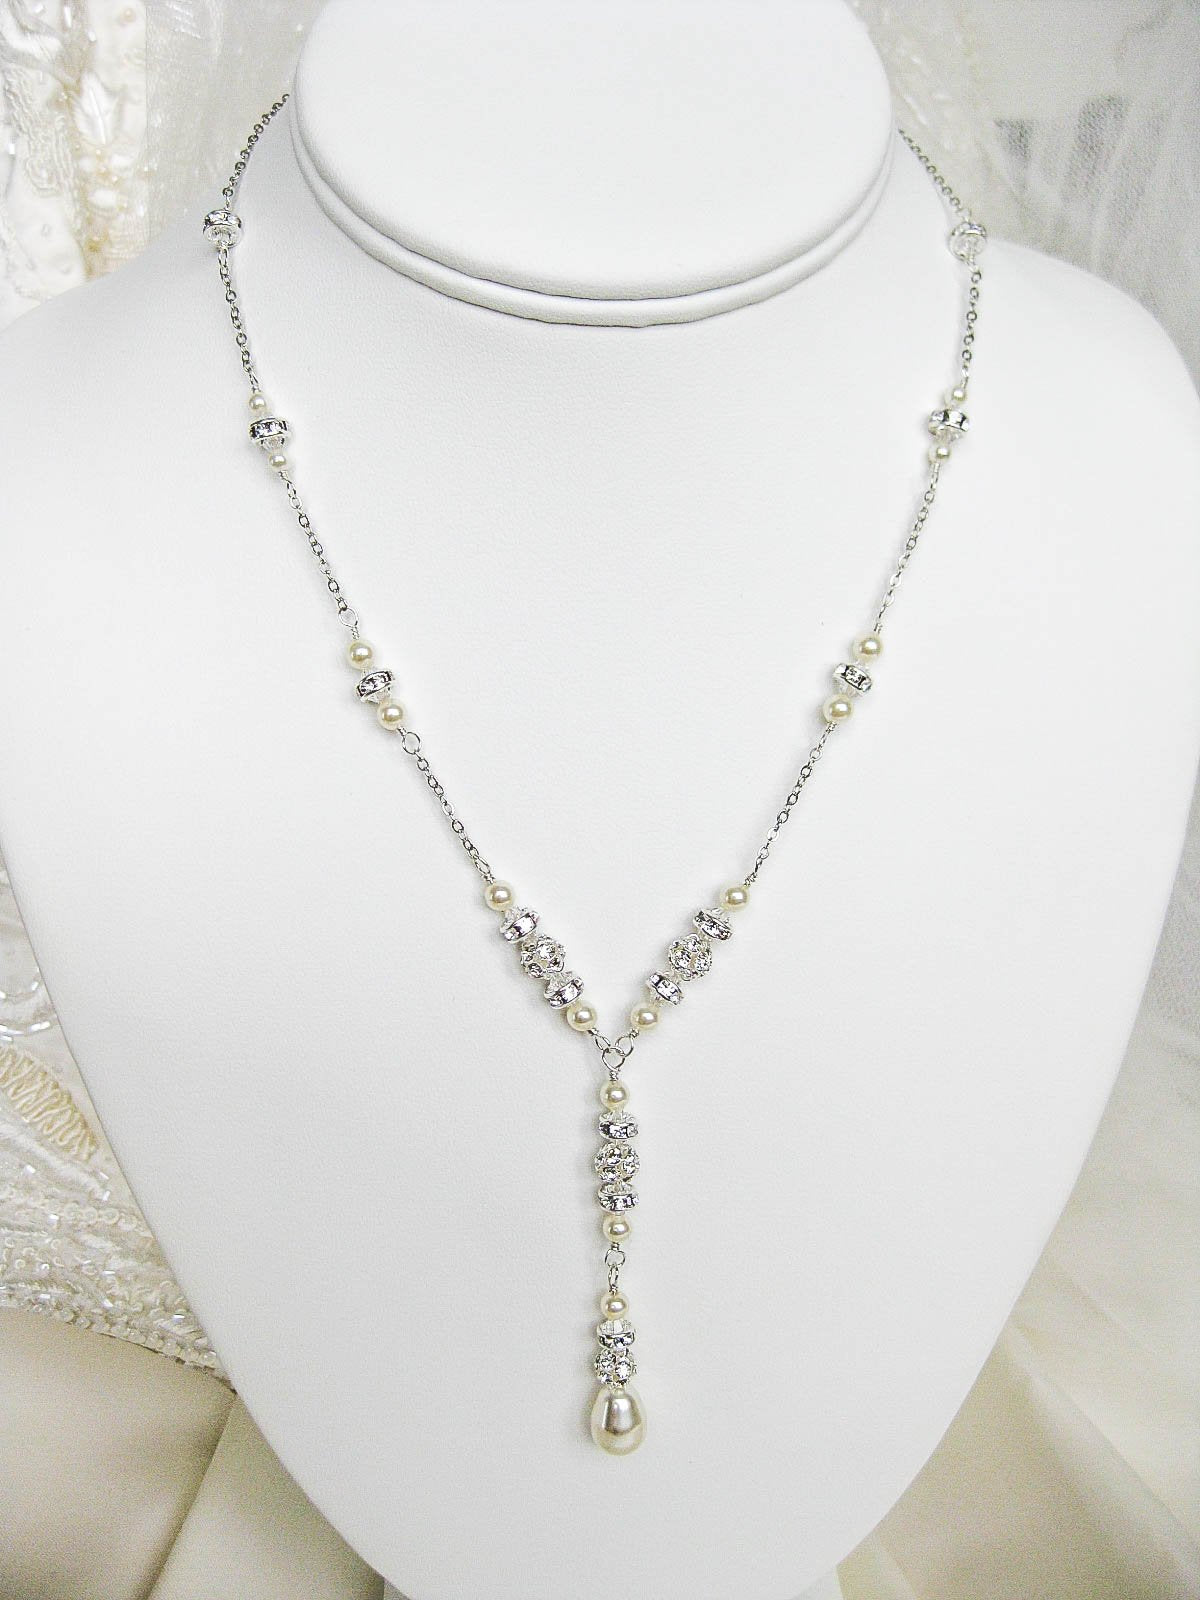 Grace III Necklace - n366